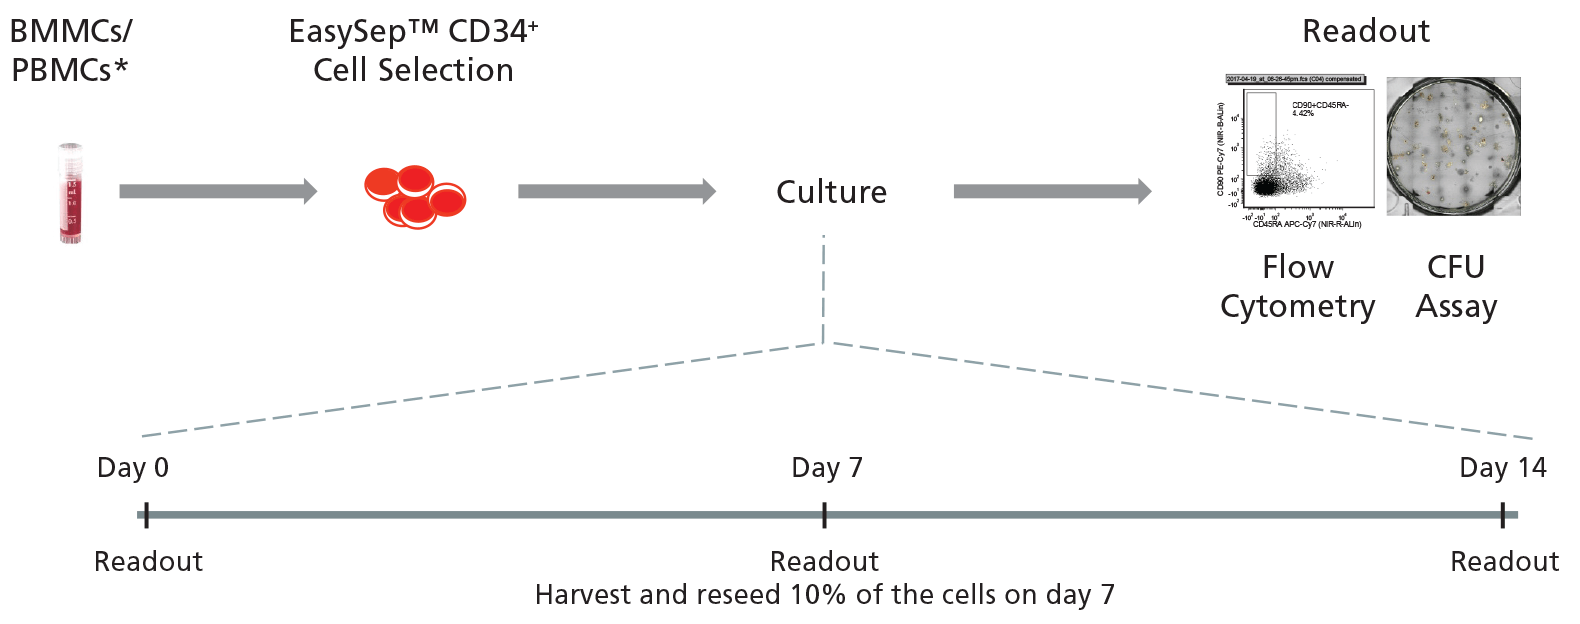 Figure 2. General Protocol for Culturing CD34<sup>+</sup> CML Cells